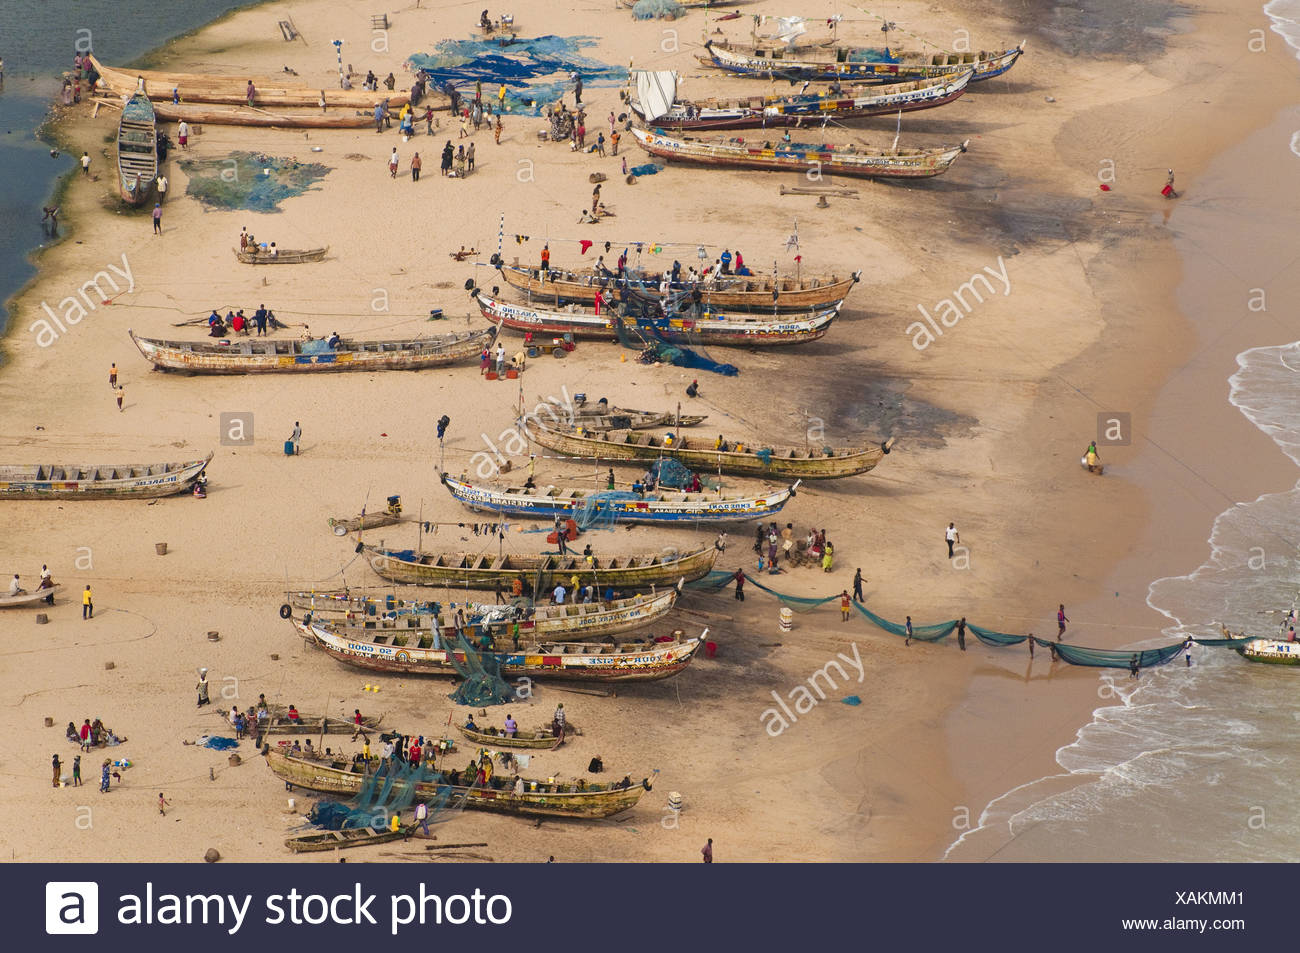 Seagoing fishing canoes hauled out on beach Ghana Ghana - Stock Image